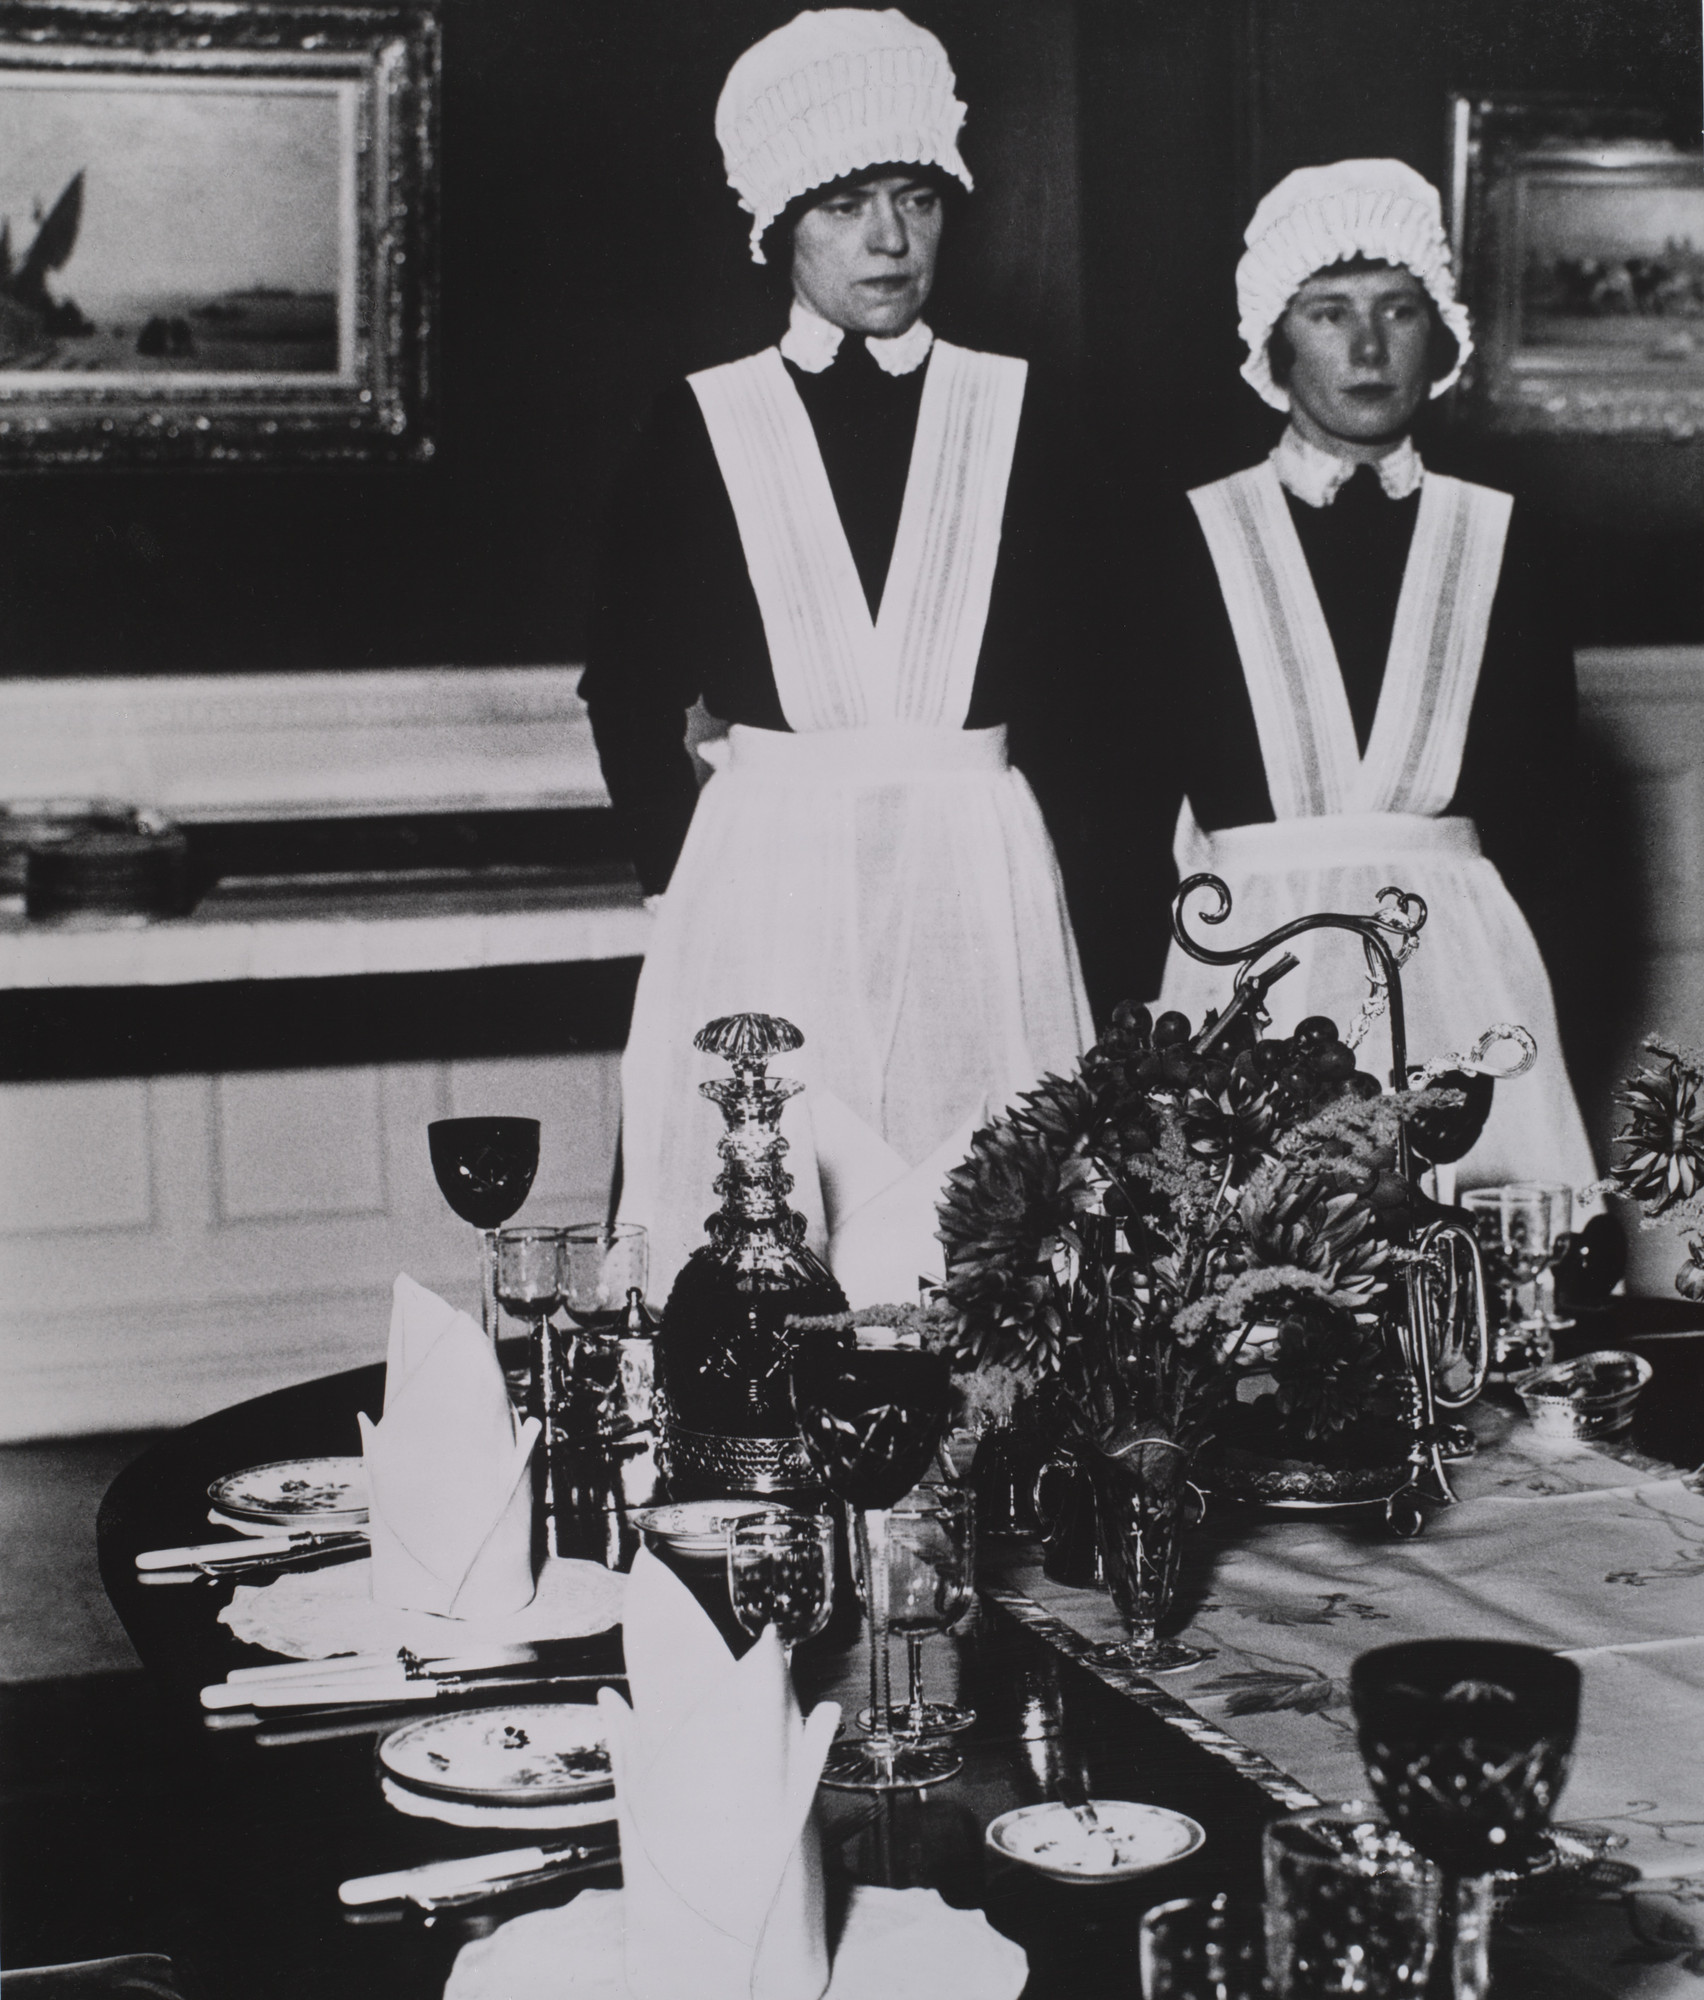 Bill Brandt. Parlourmaid and Under-parlourmaid Ready to Serve Dinner. 1936